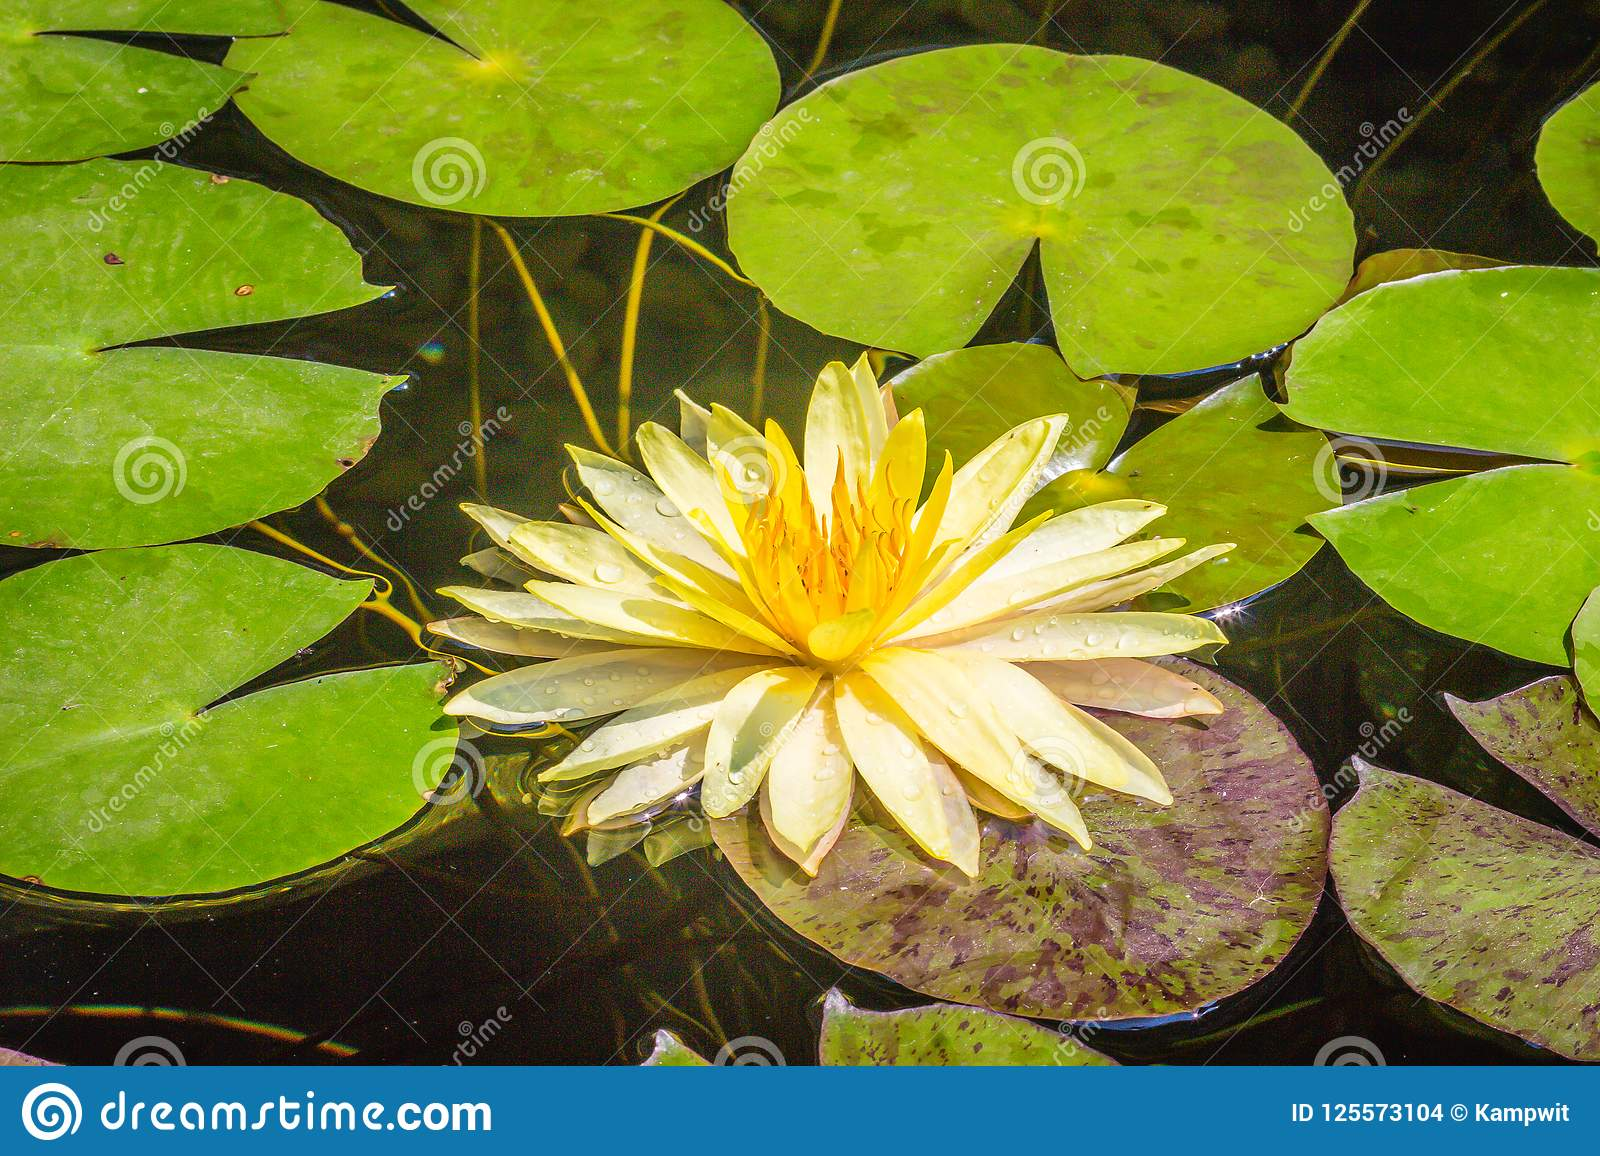 Beautiful yellow lotus with green leaves in swamp pond peaceful download beautiful yellow lotus with green leaves in swamp pond peaceful yellow water lily flowers mightylinksfo